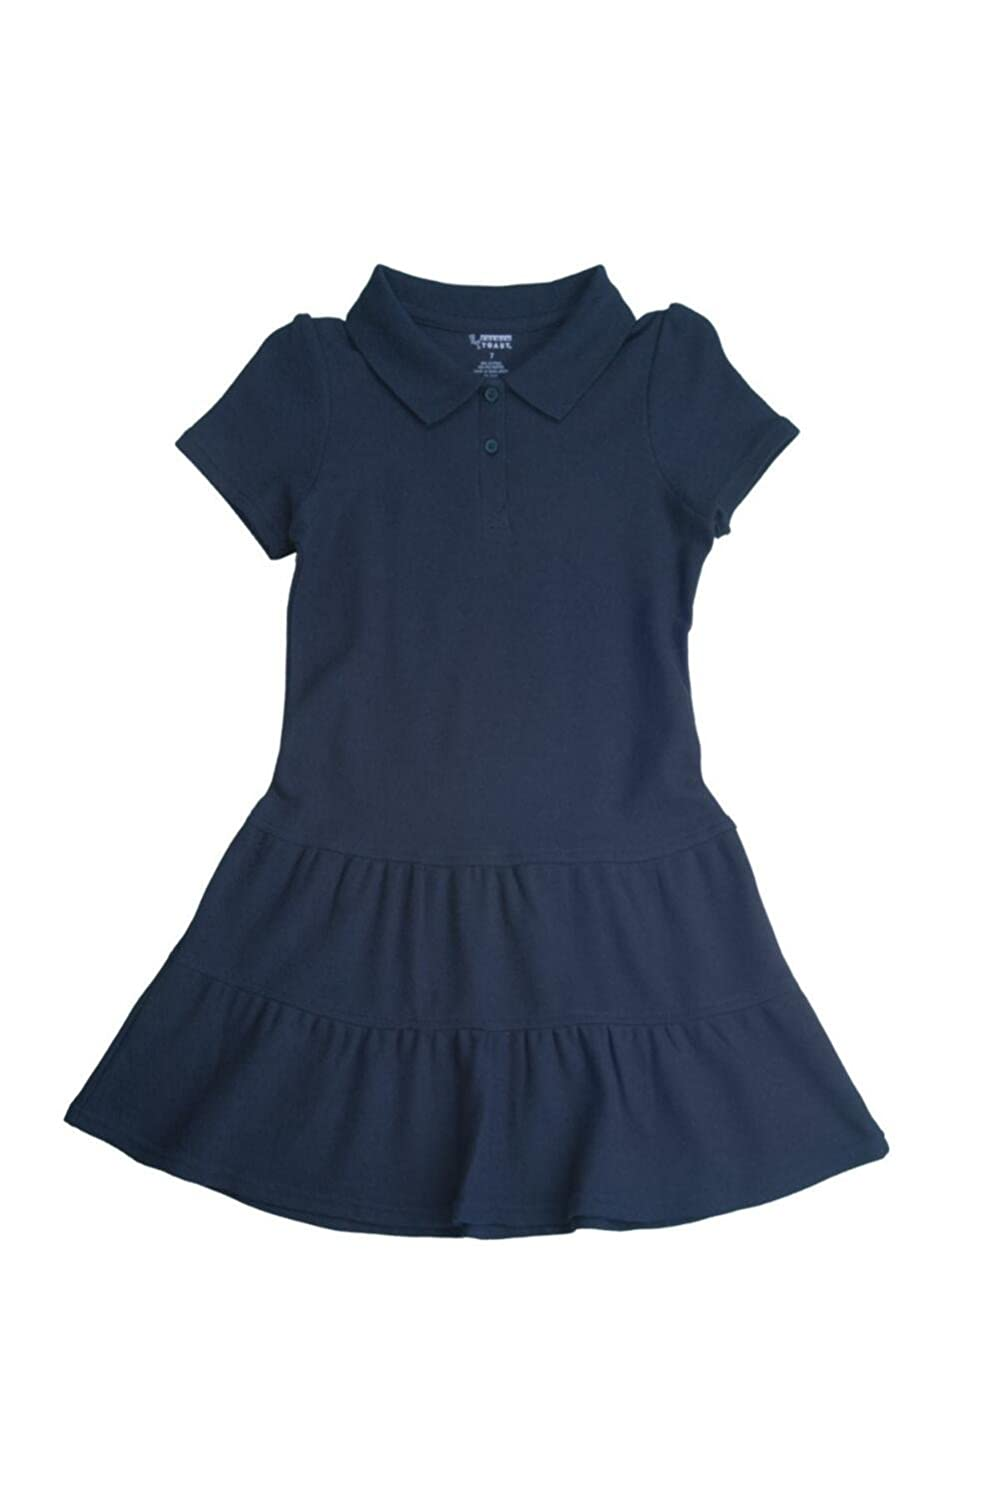 FRENCH TOAST School Uniforms Girls Ruffled Pique Polo Dress - Z9018 - Navy, 7 1354G NAVY 7